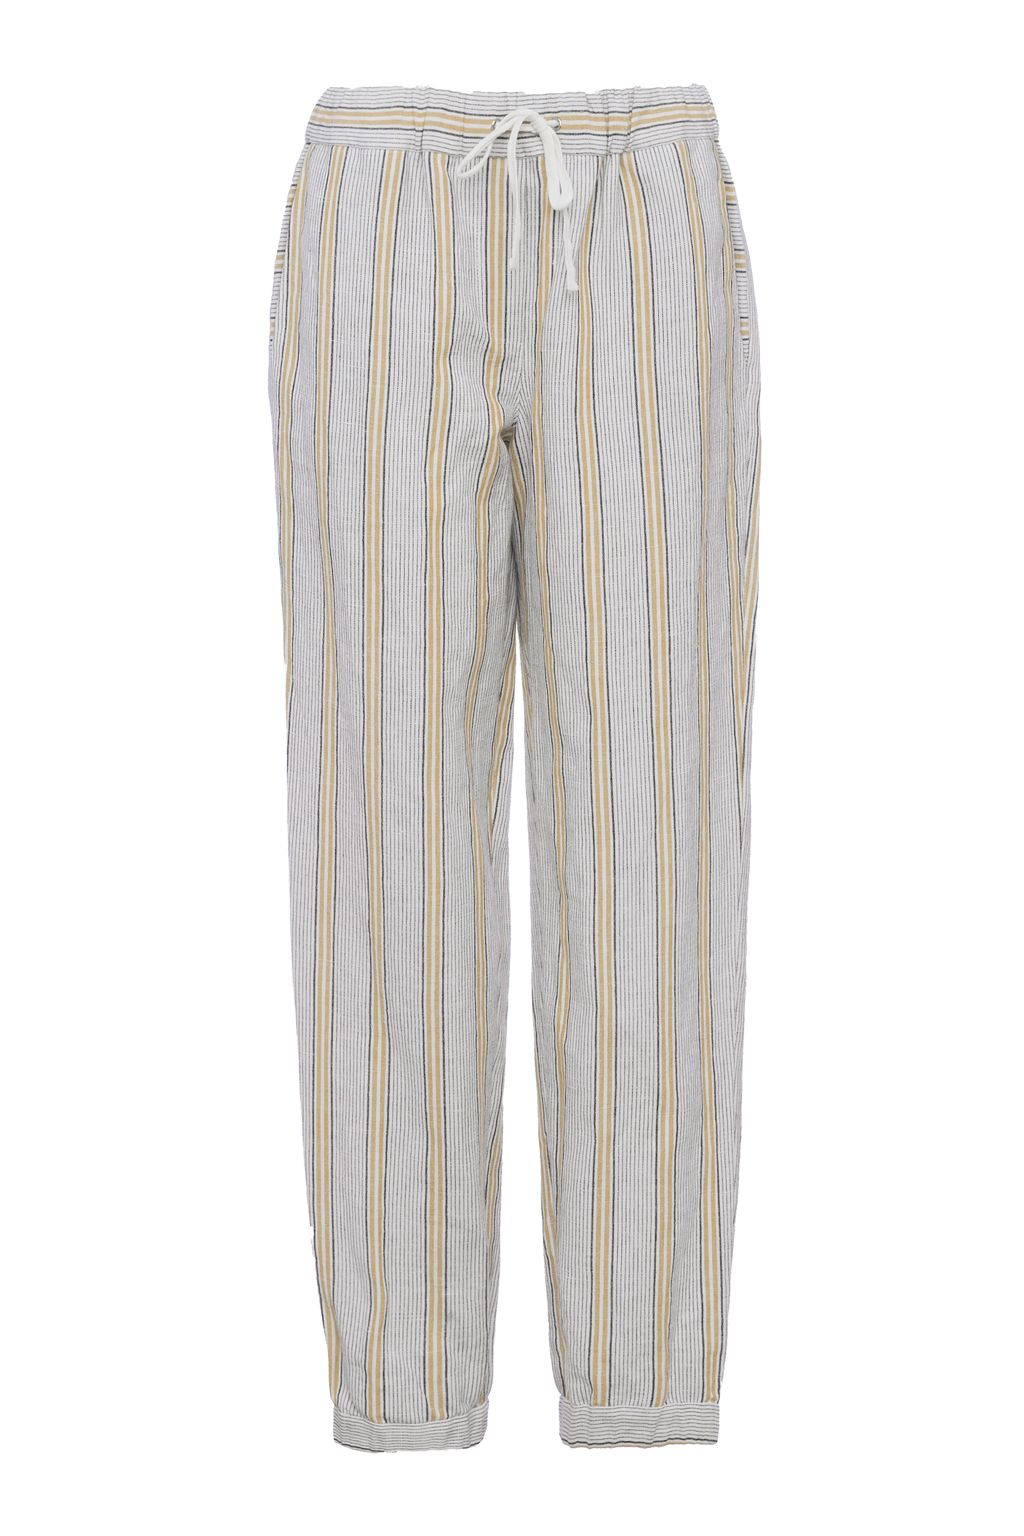 French Connection Salana Striped Drawstring Linen Joggers, Grey